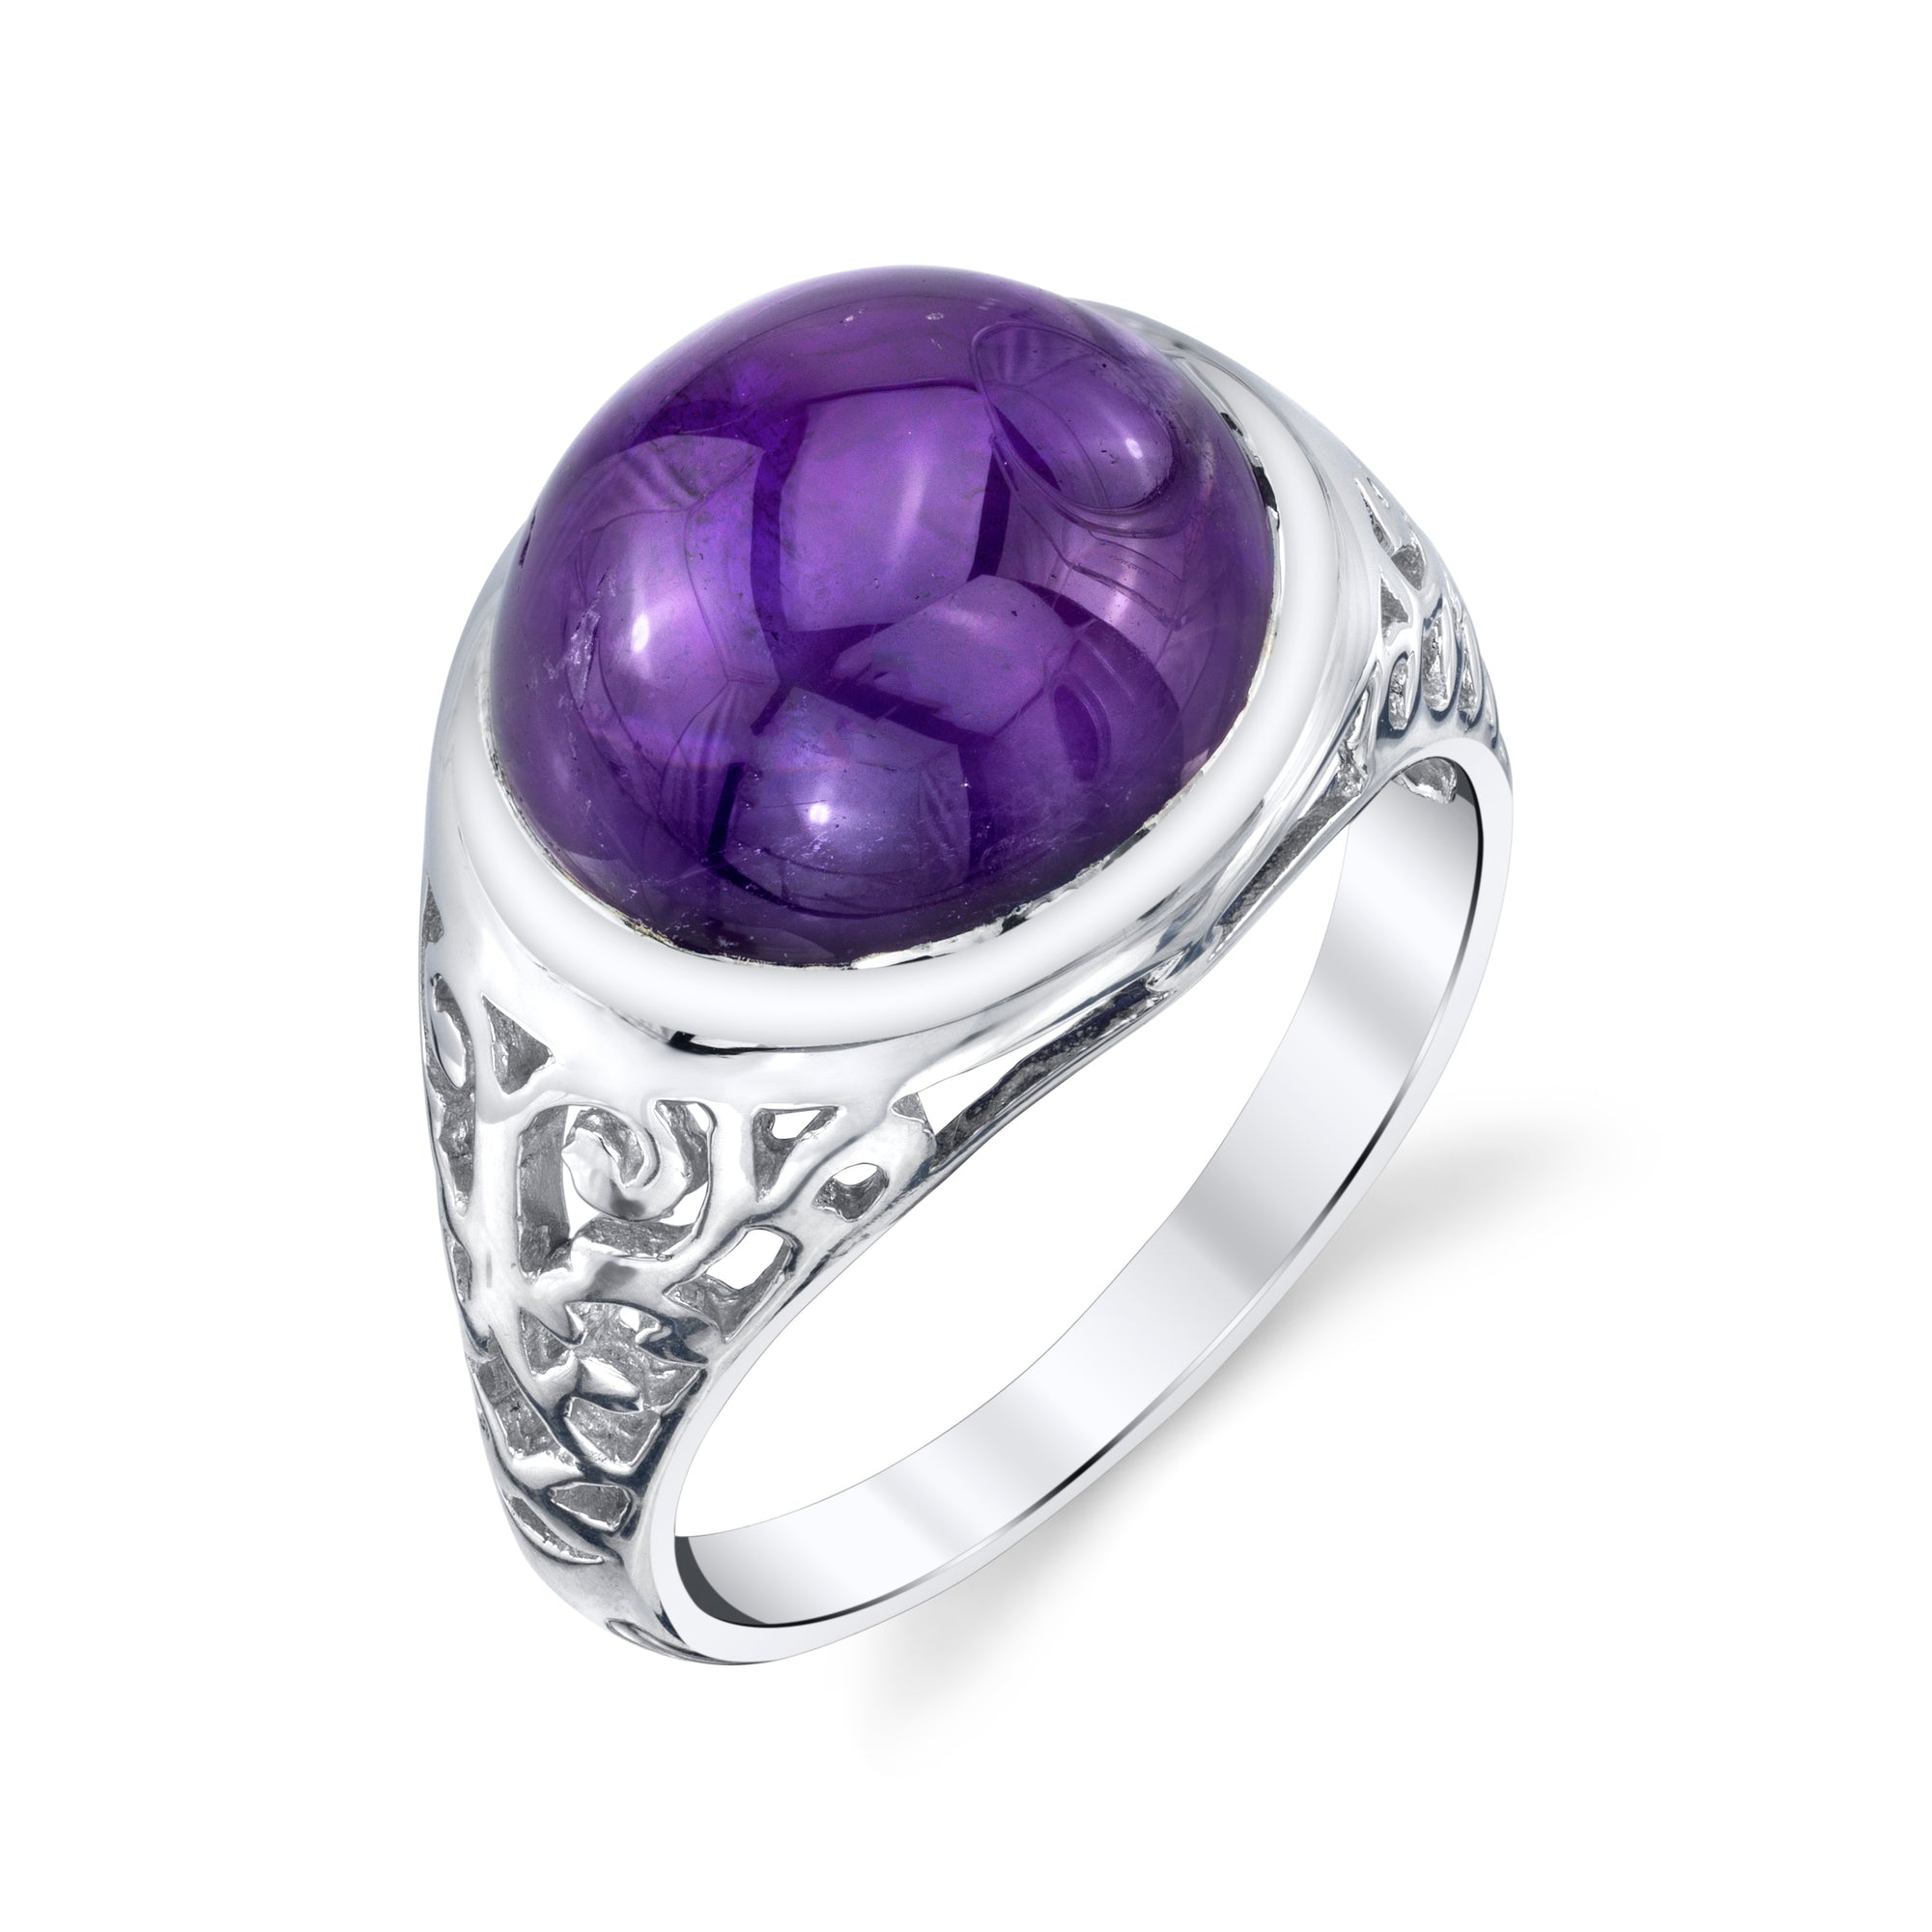 Intricate Cabochon Ring